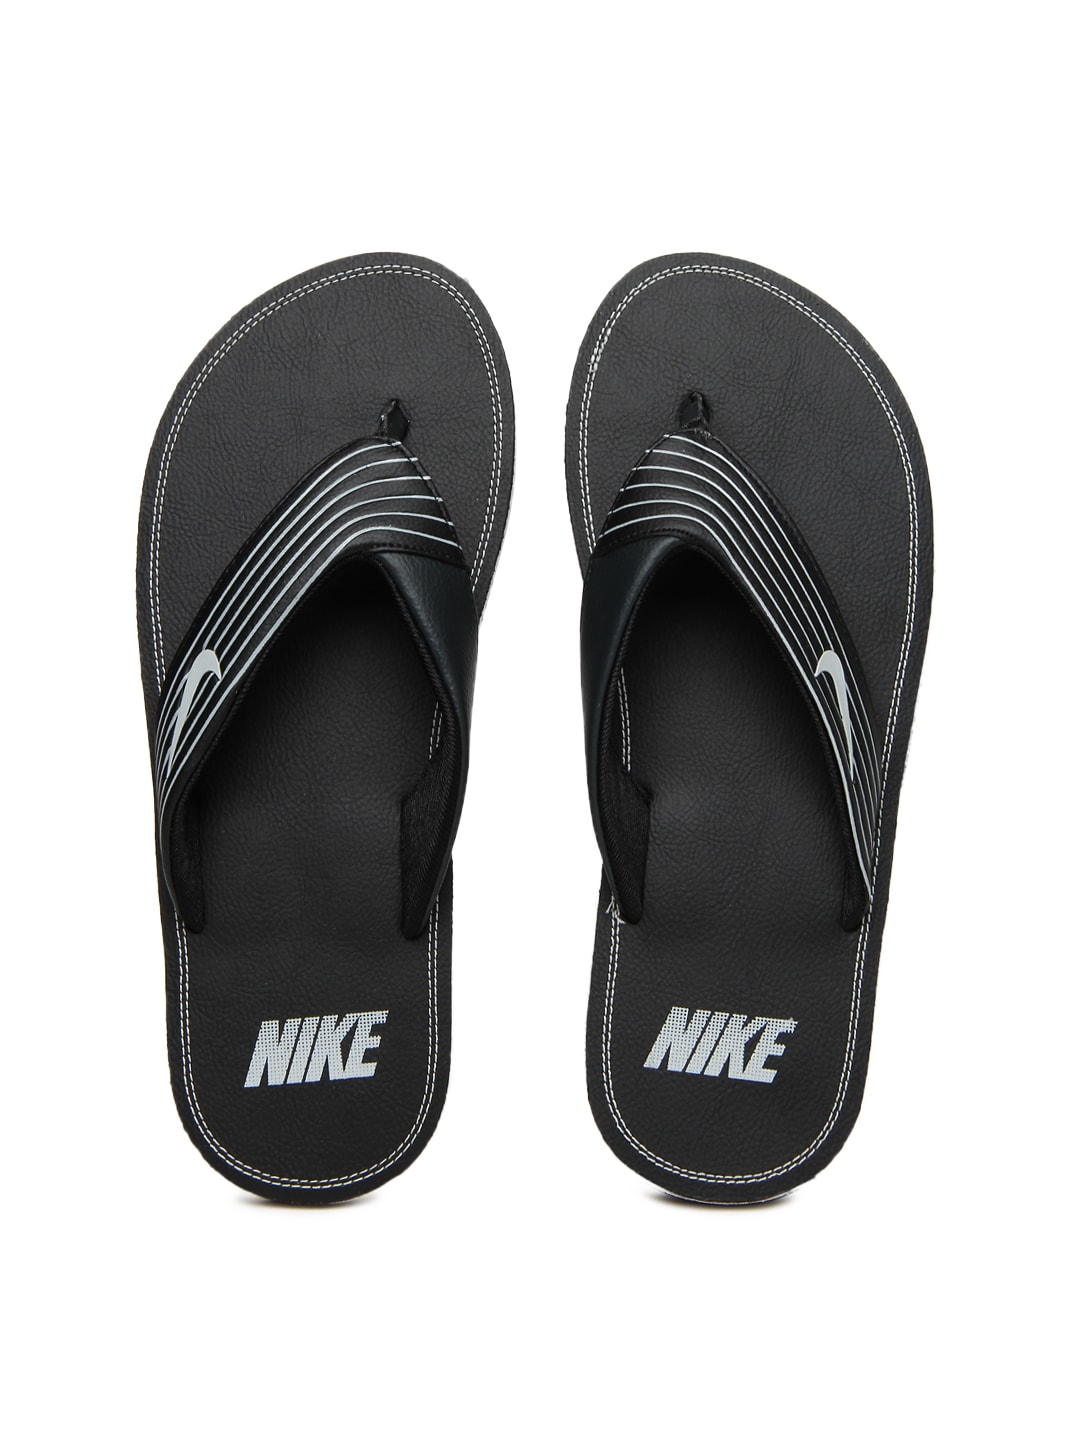 1336ab4a9ff nike flip flop sandals on sale   OFF52% Discounts